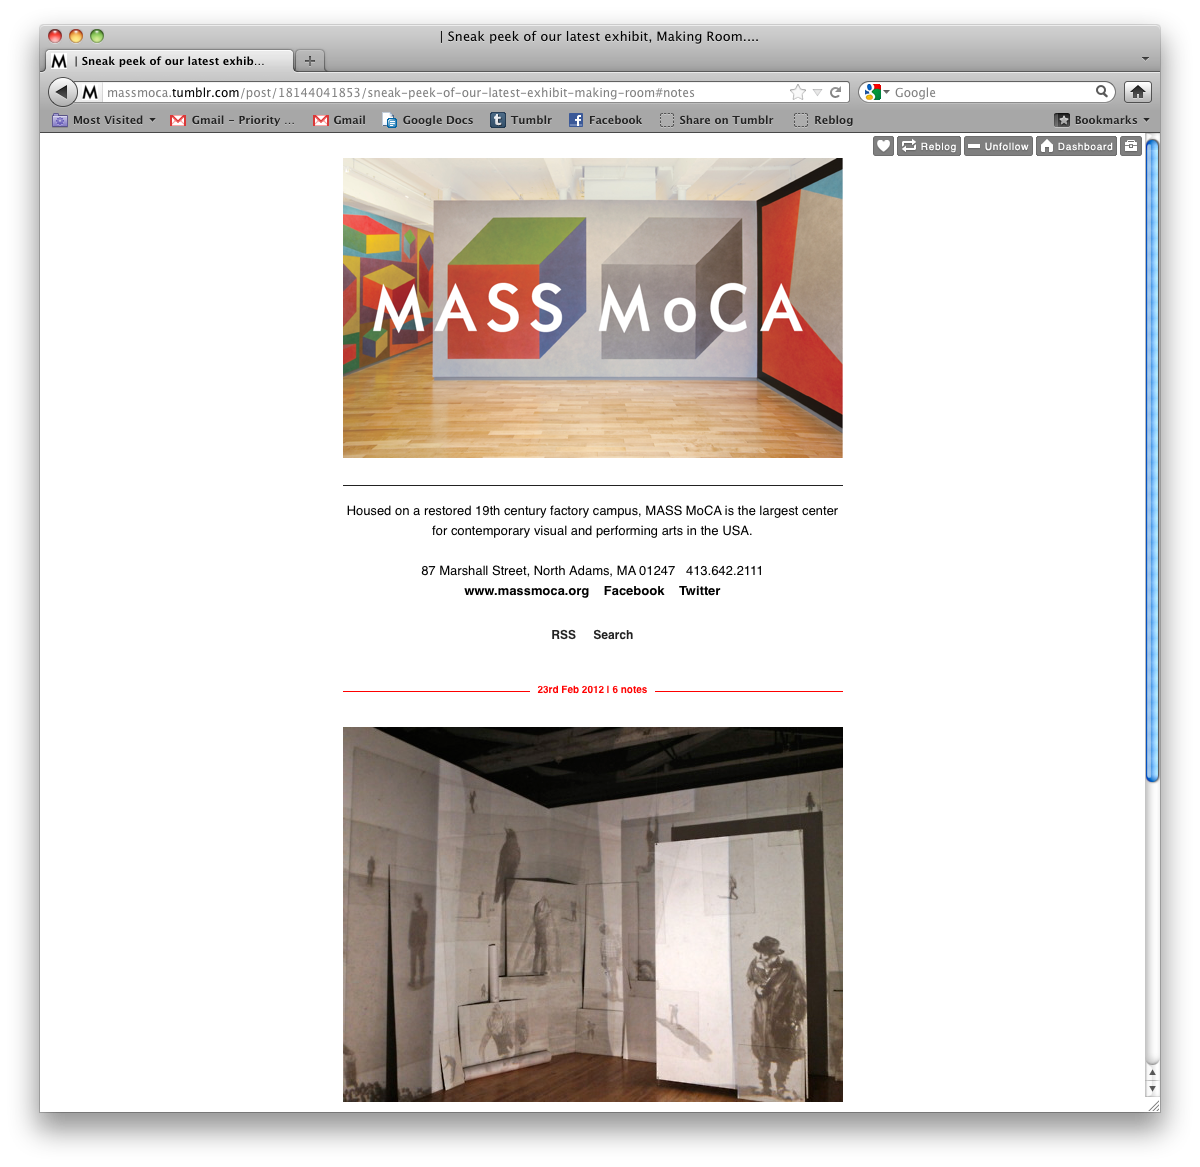 The staff blog of the MASS MoCA team gives behind the scenes insight on what it's like to work at the museum on a day to day basis, the subject of which segues into conversations about art and interactions with museum visitors.  The MASS MoCA Tumblr is one of the most highly interactive museum Tumblrs because it relies on the sensibility of the awesome people who work there, breaking down the often impenetrable barrier between institution and visitor.